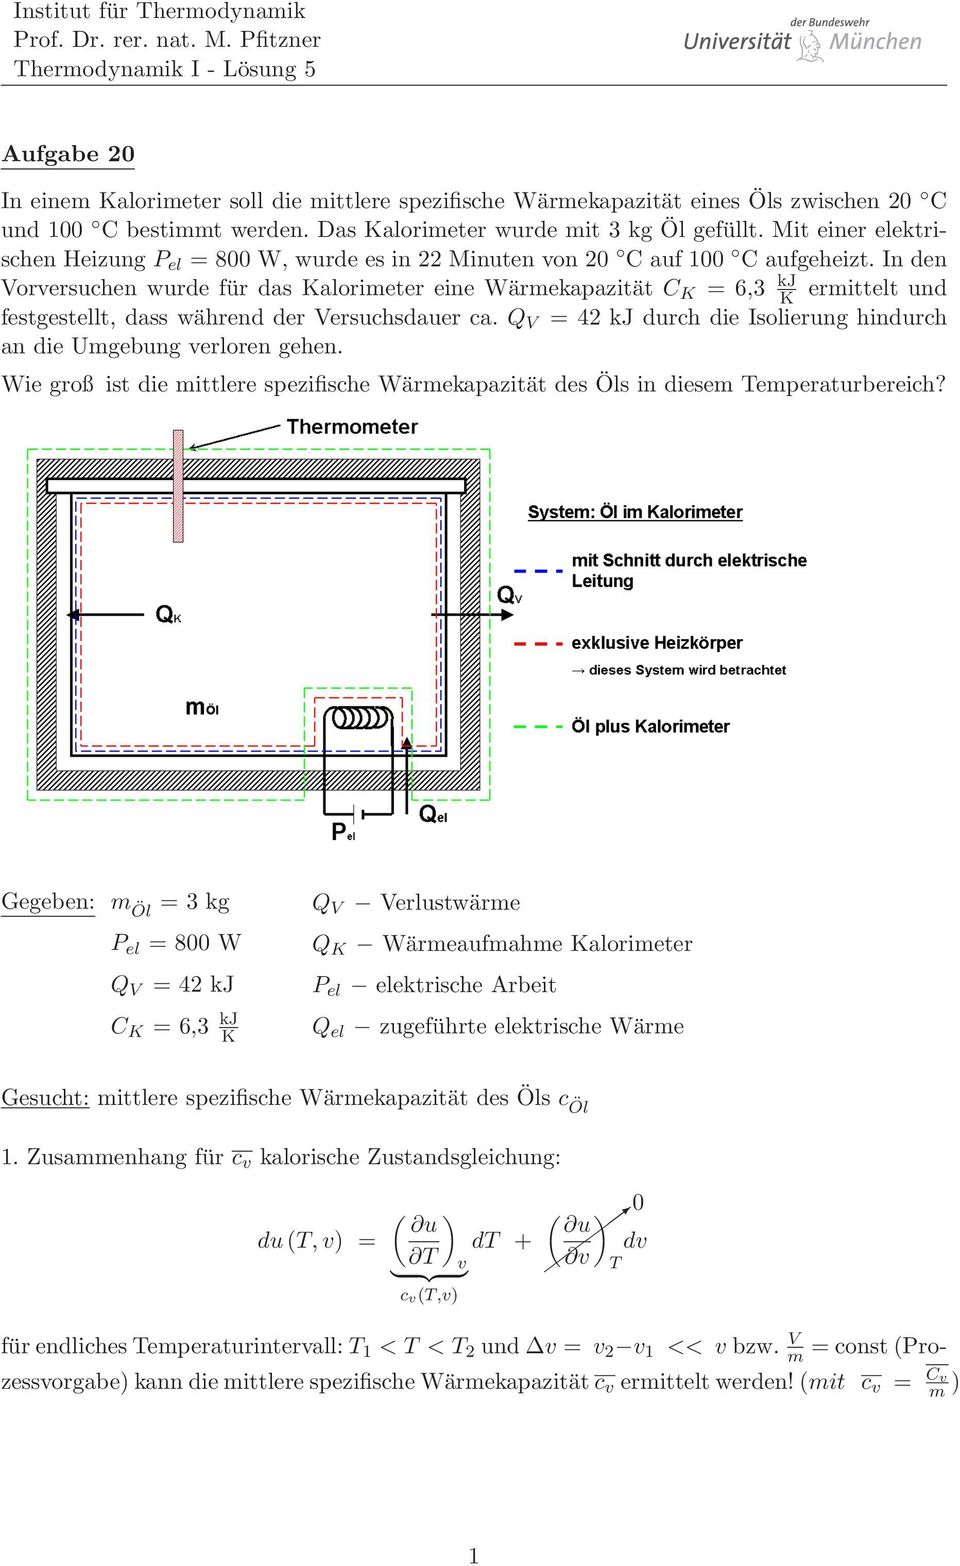 totales differential thermodynamik